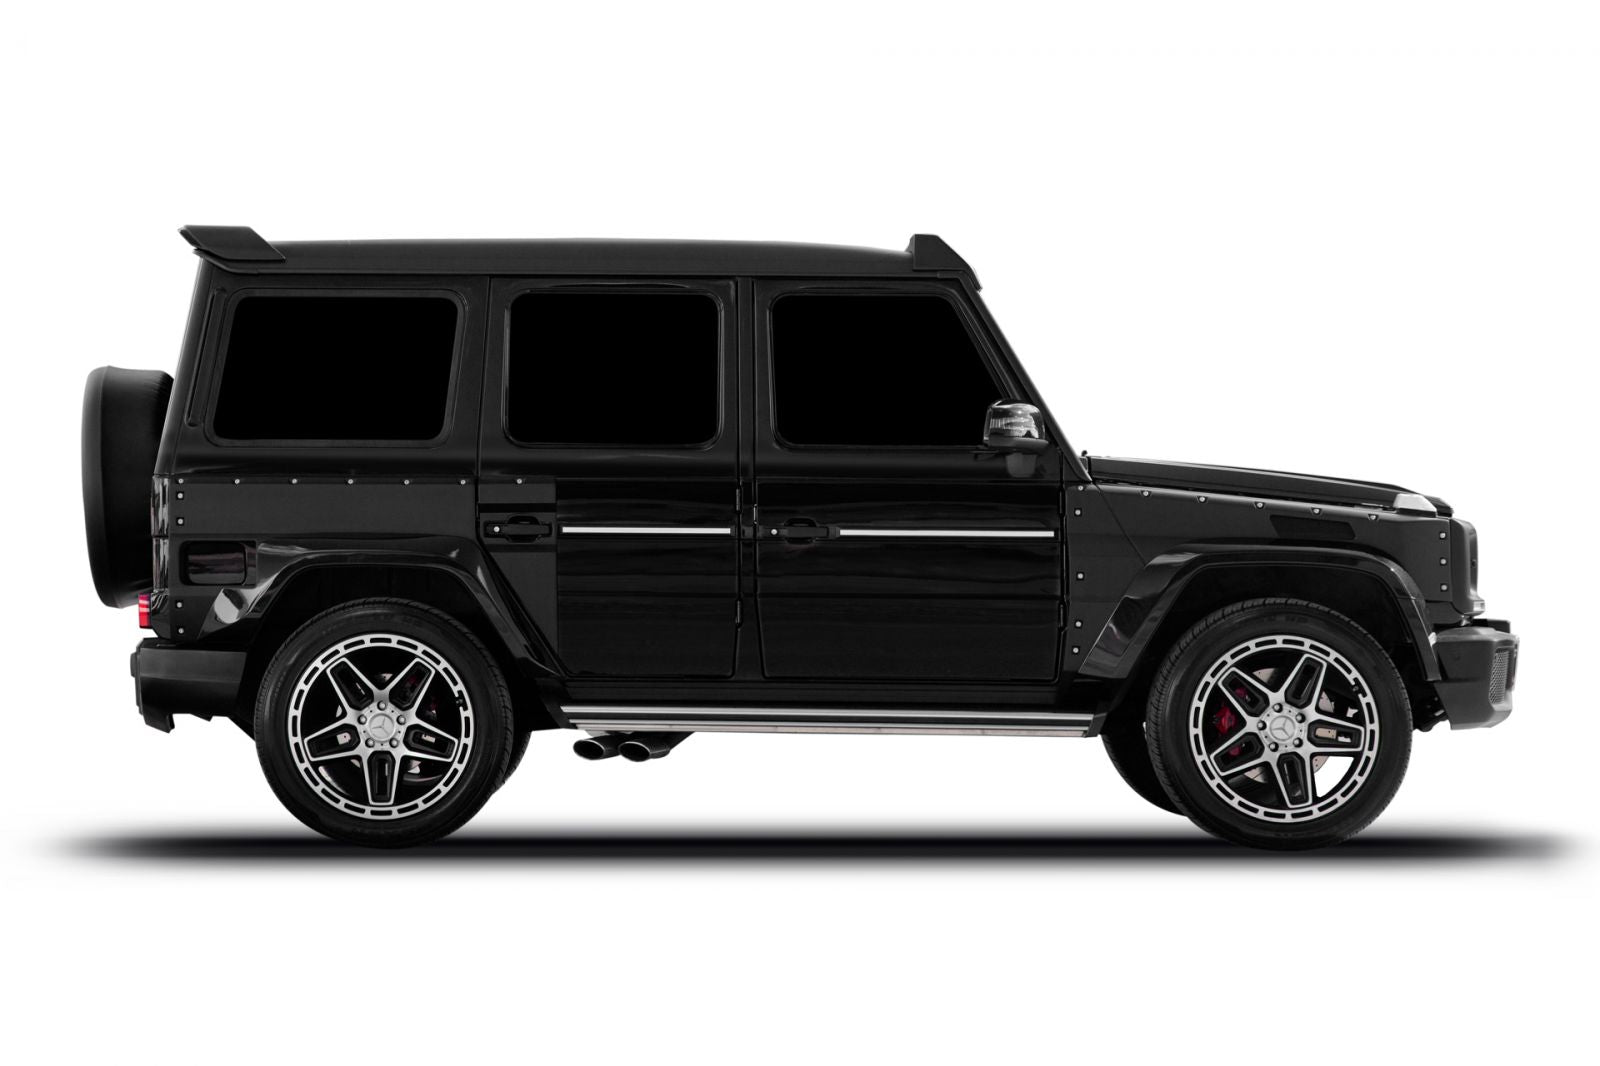 MERCEDES G CLASS / G63 AMG CTC - HAMMER EDITION KIT